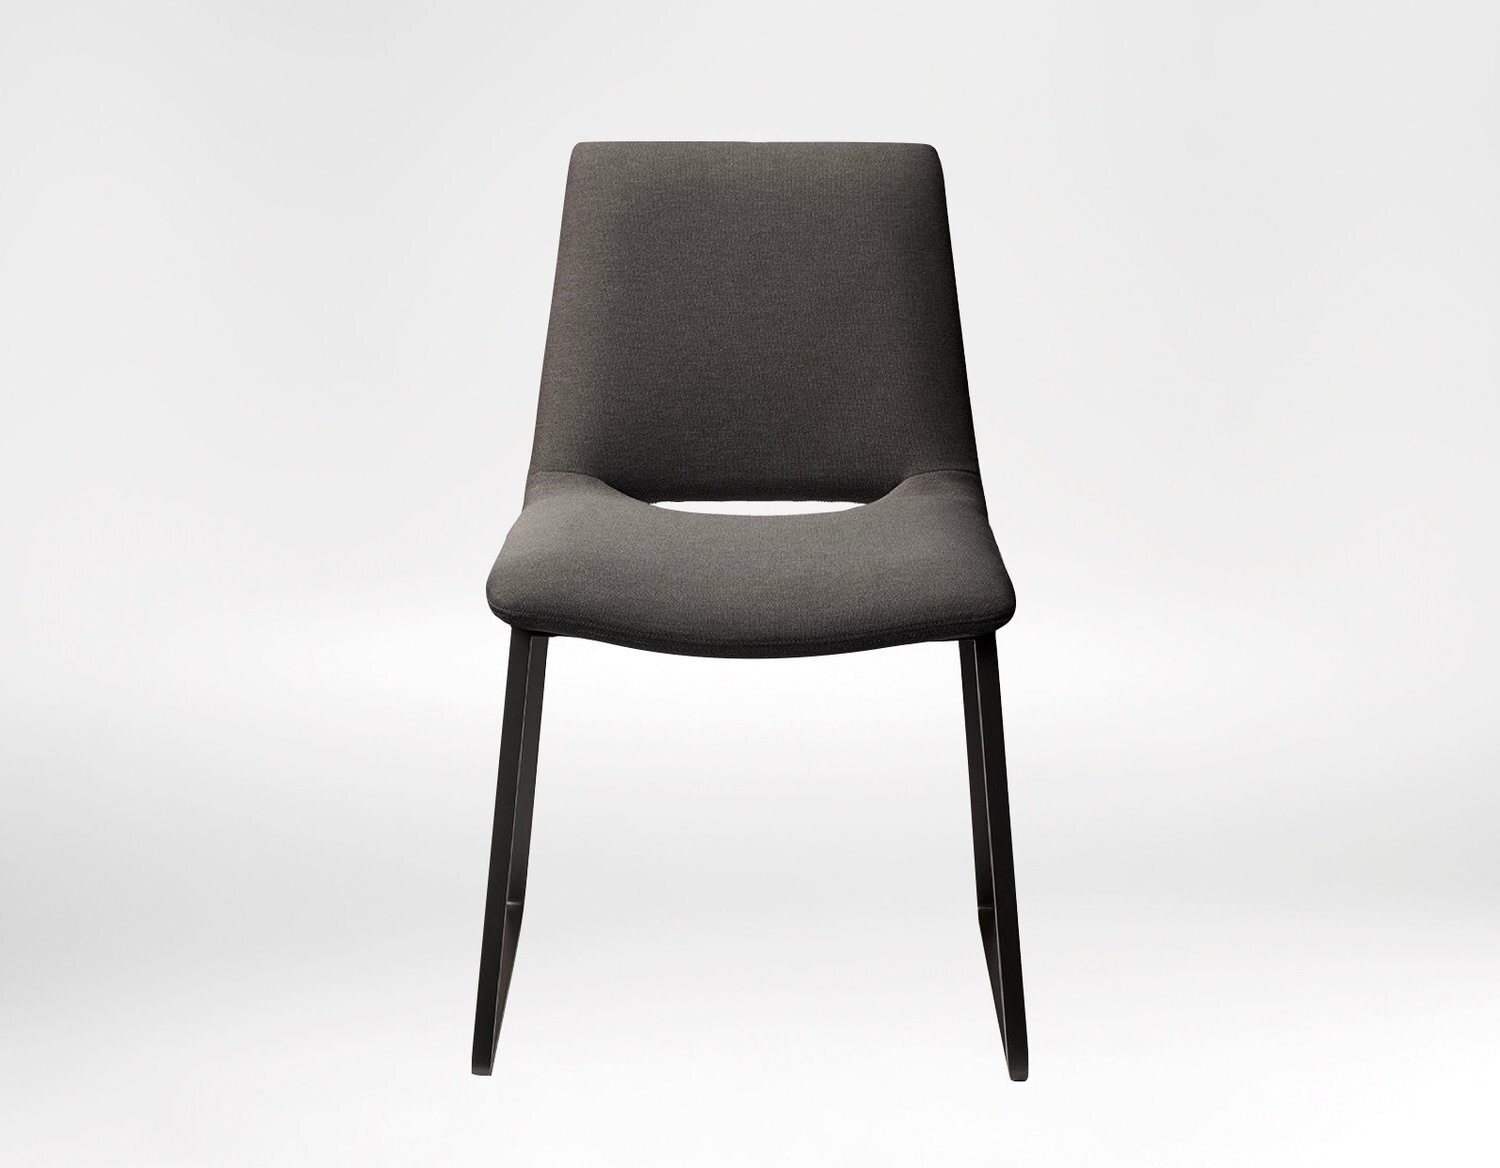 Waltz plus chair - The Waltz Plus Dining Chair is a cool expression of contemporary design.